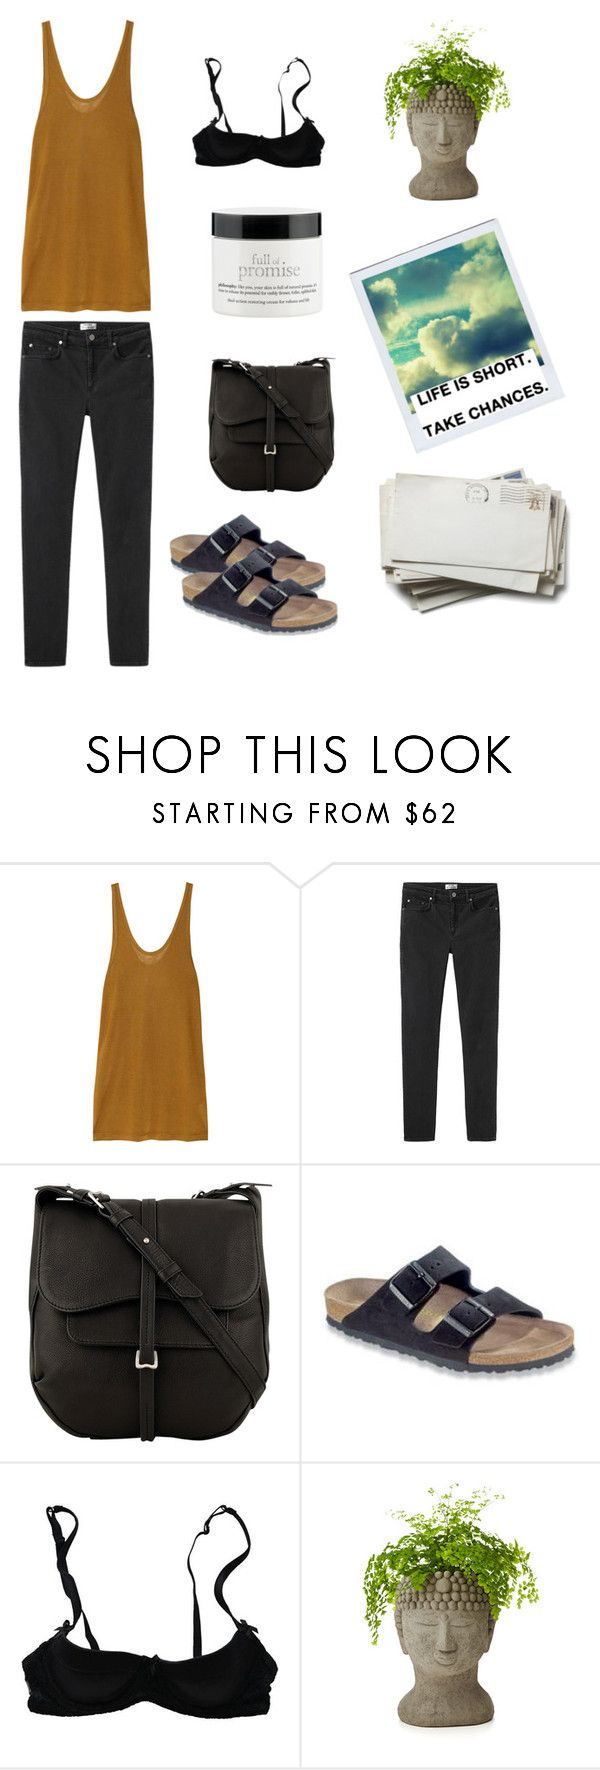 """""""Life is short, take chances."""" by pammxx ❤ liked on Polyvore featuring T By Alexander Wang, Acne Studios, Radley, Mimi Holliday by Damaris, Polaroid, philosophy, StreetStyle, birkenstock, CasualChic and minimalism"""